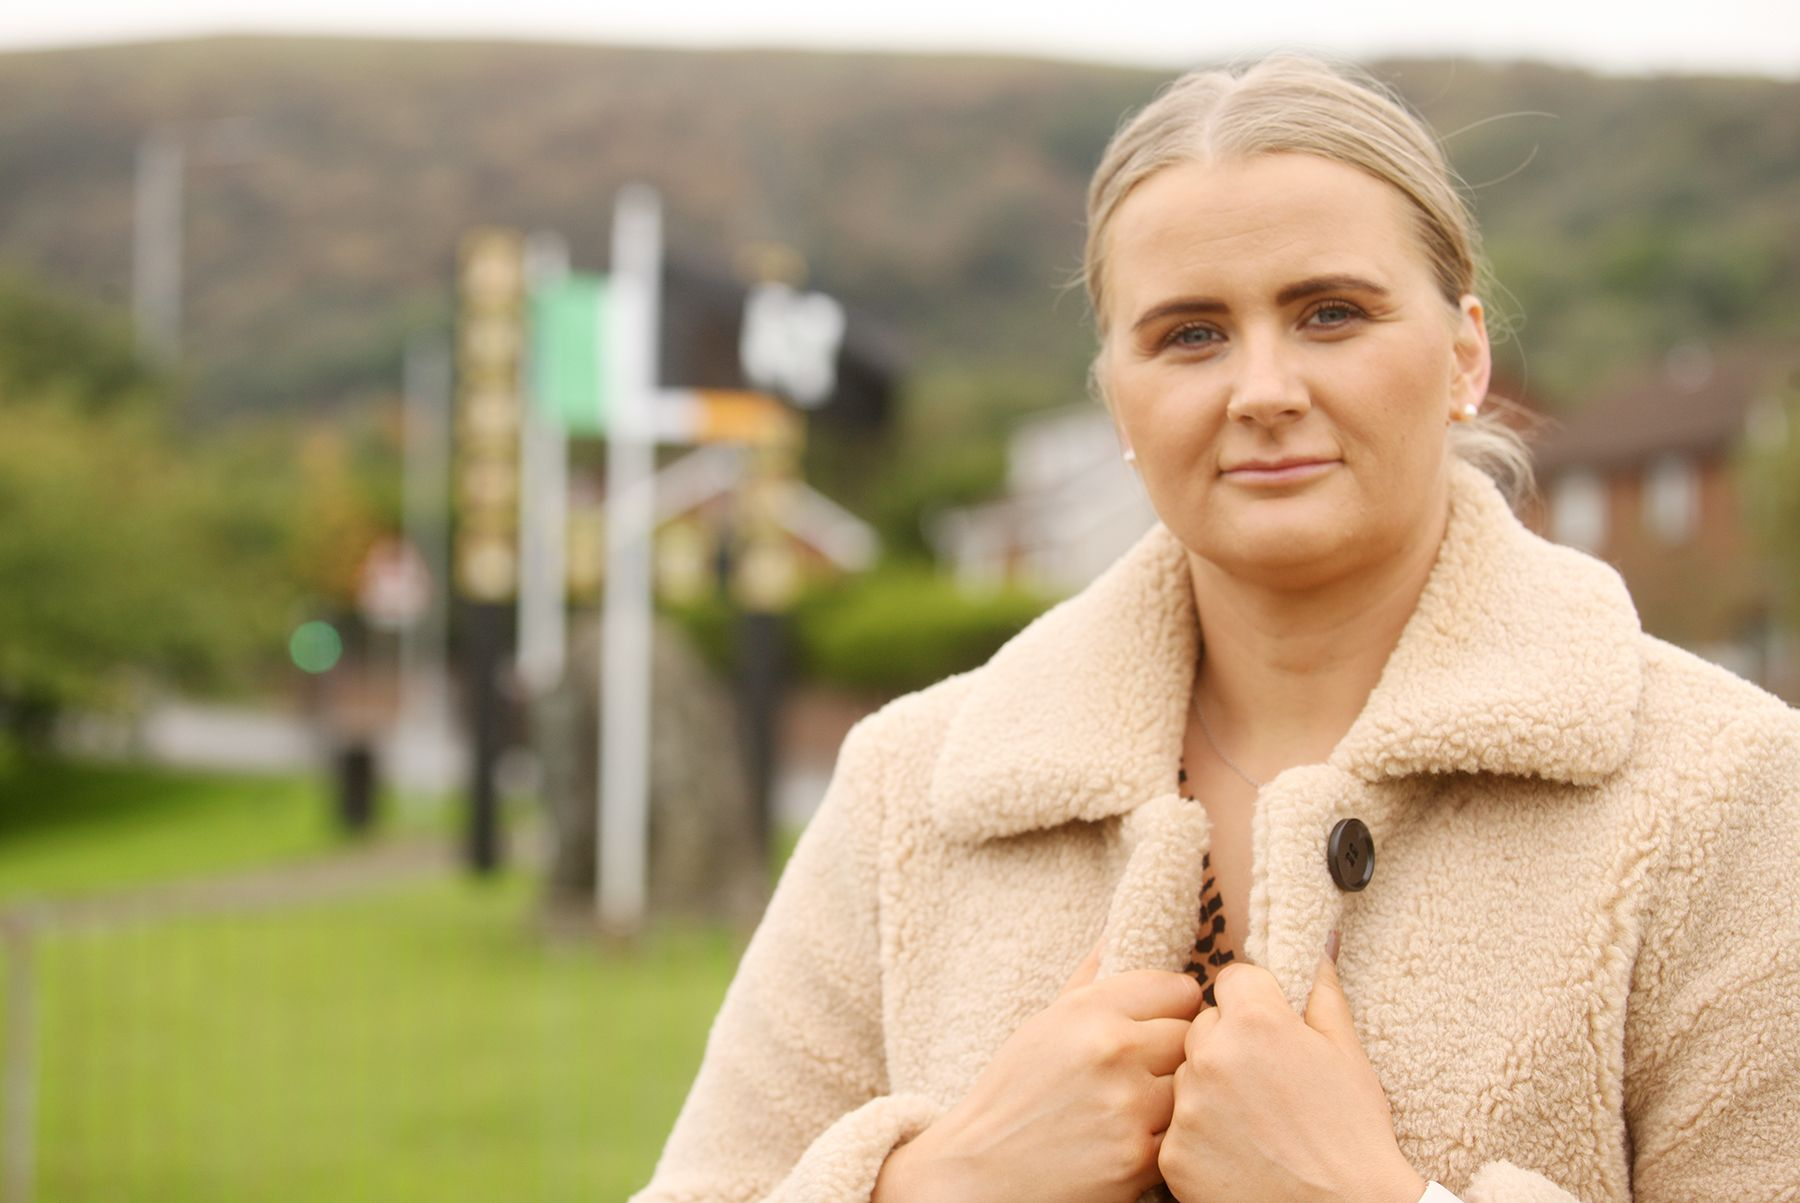 SELECTED: Aisling Reilly will replace Fra McCann when he steps down as MLA